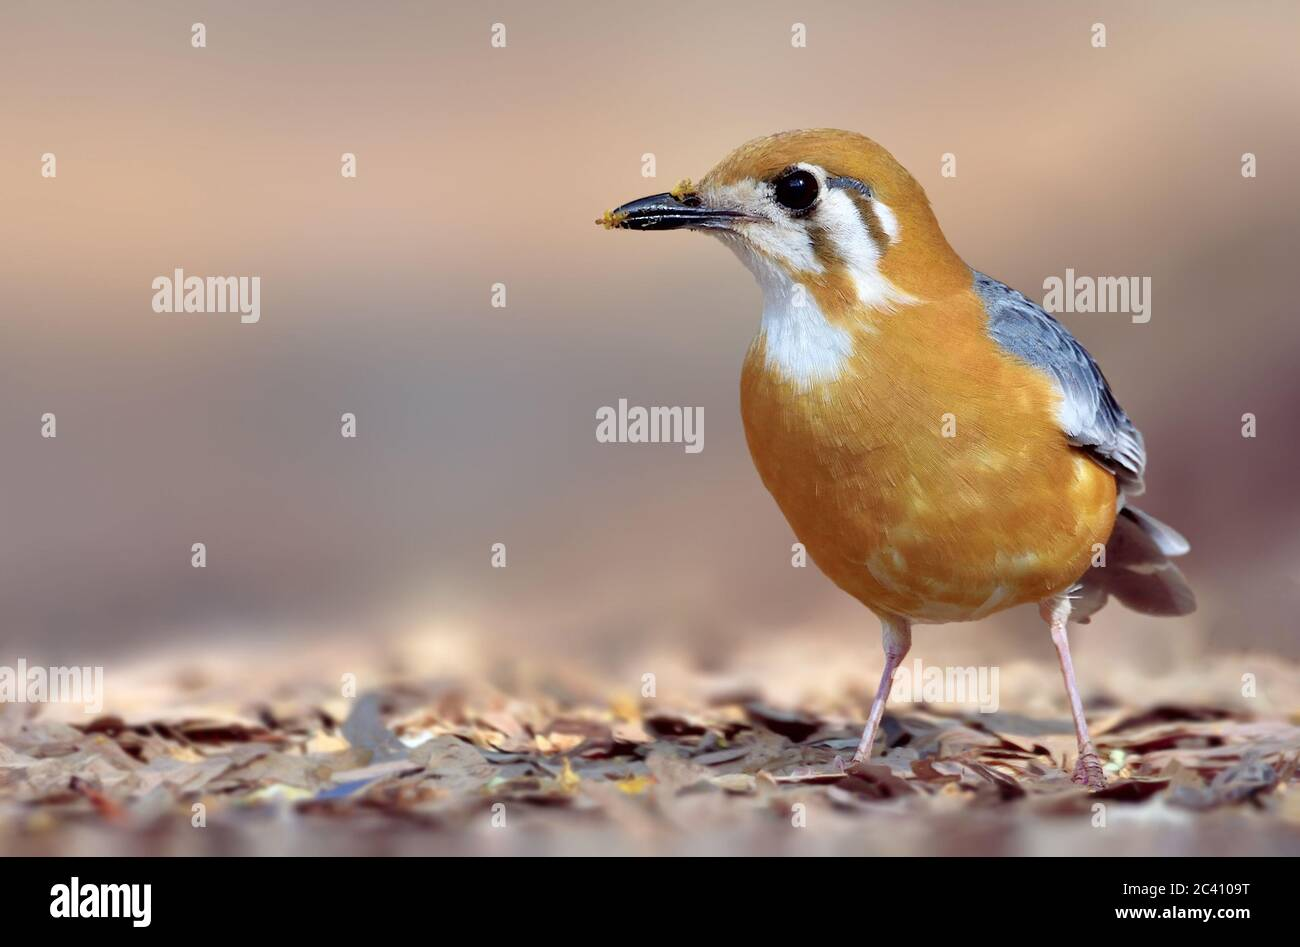 The orange-headed thrush is a bird in the thrush family. It is common in well-wooded areas of the Indian Subcontinent and Southeast Asia. Most populat Stock Photo